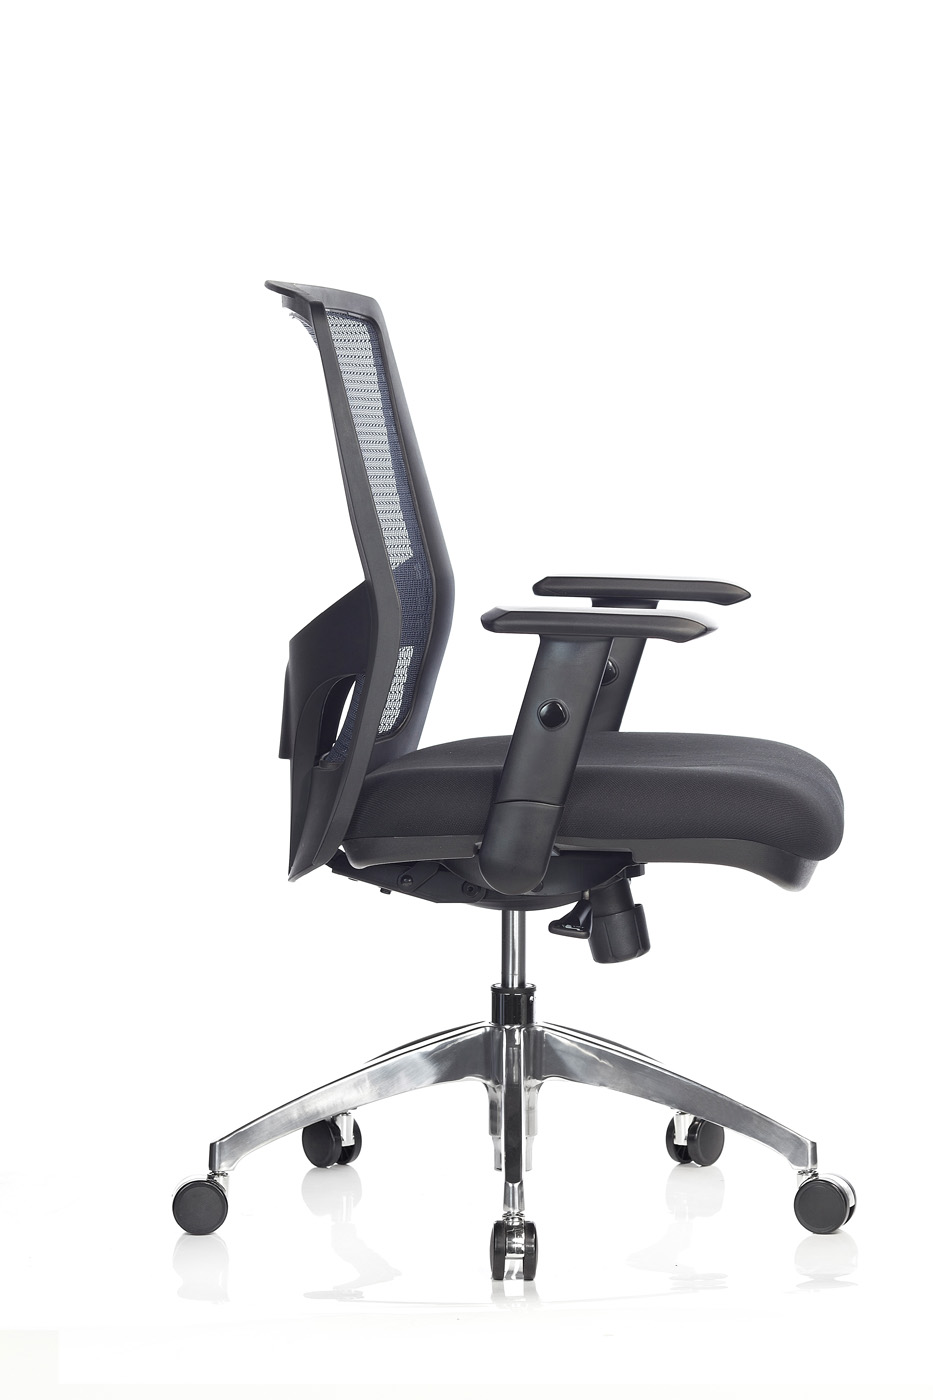 S-96MA office chair